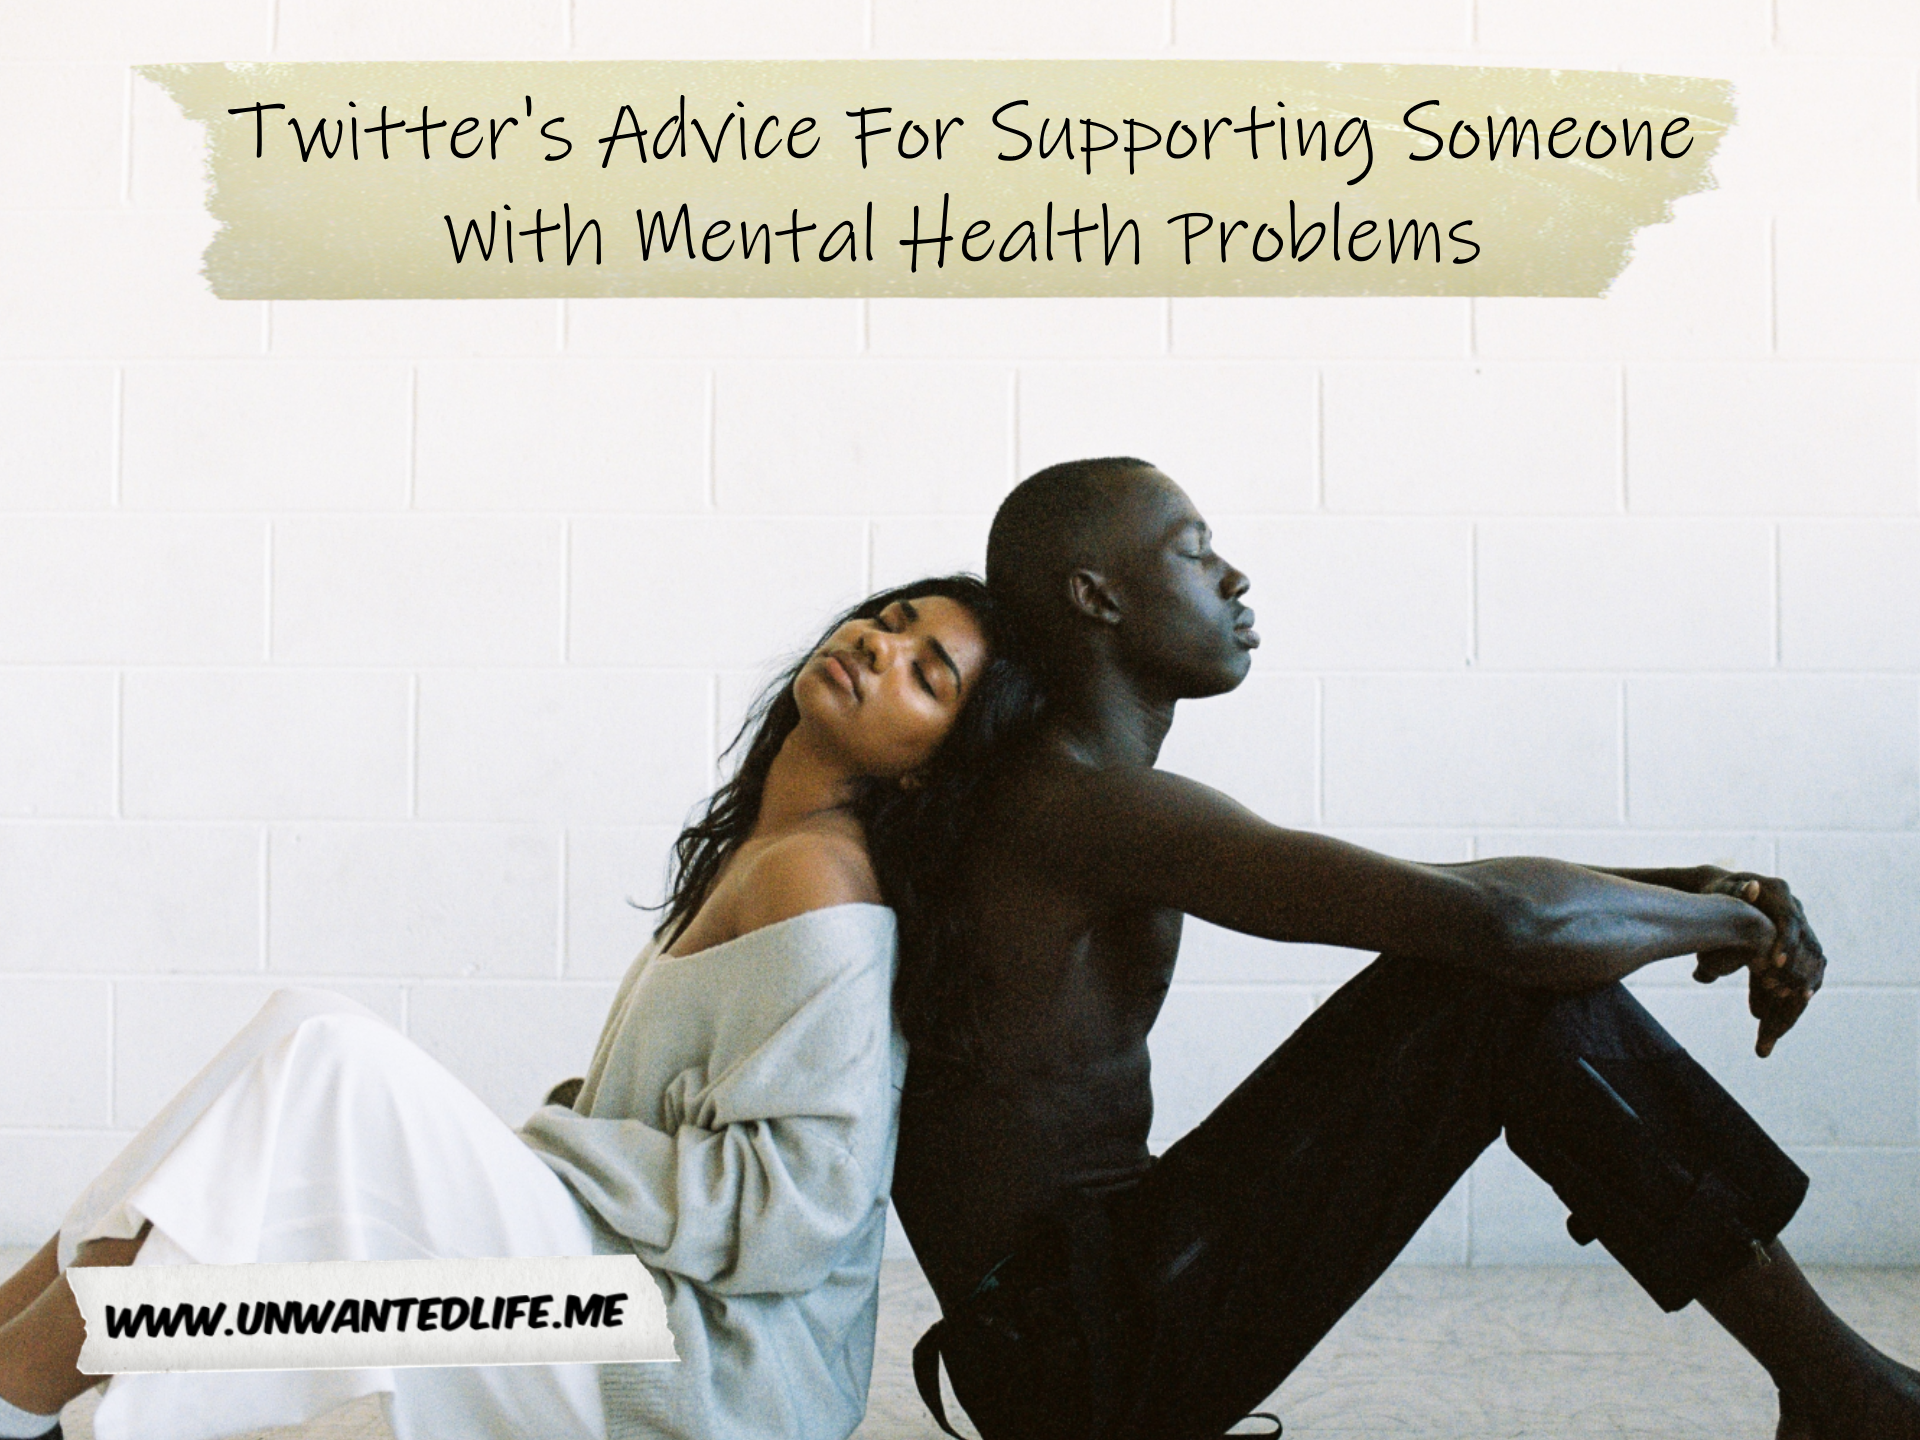 Two people, a man and a woman, sitting back to back and leaning on each other to represent being supportive with the tile of the article - Twitter's Advice For Supporting Someone With Mental Health Problems - across the top of the image